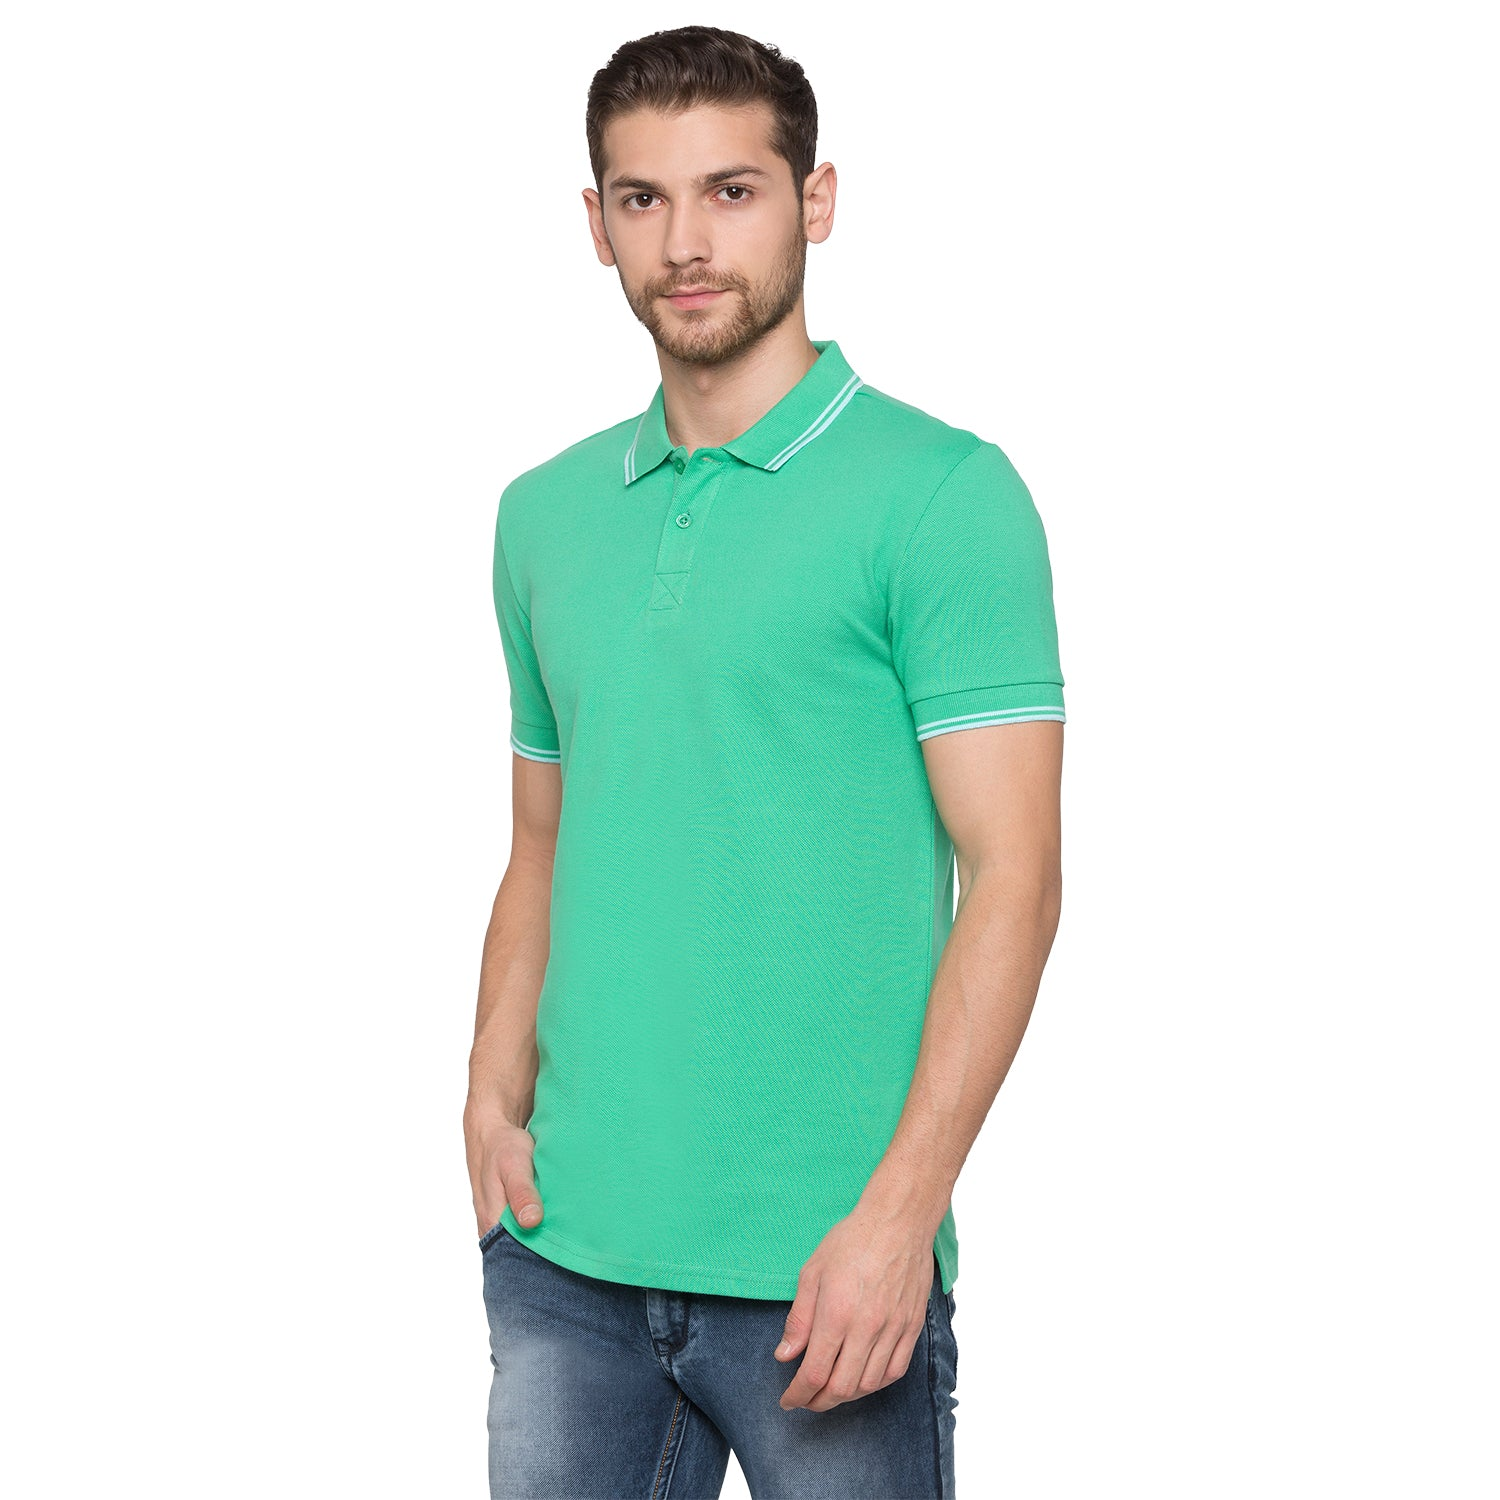 Globus Green Solid Polo T-Shirt2